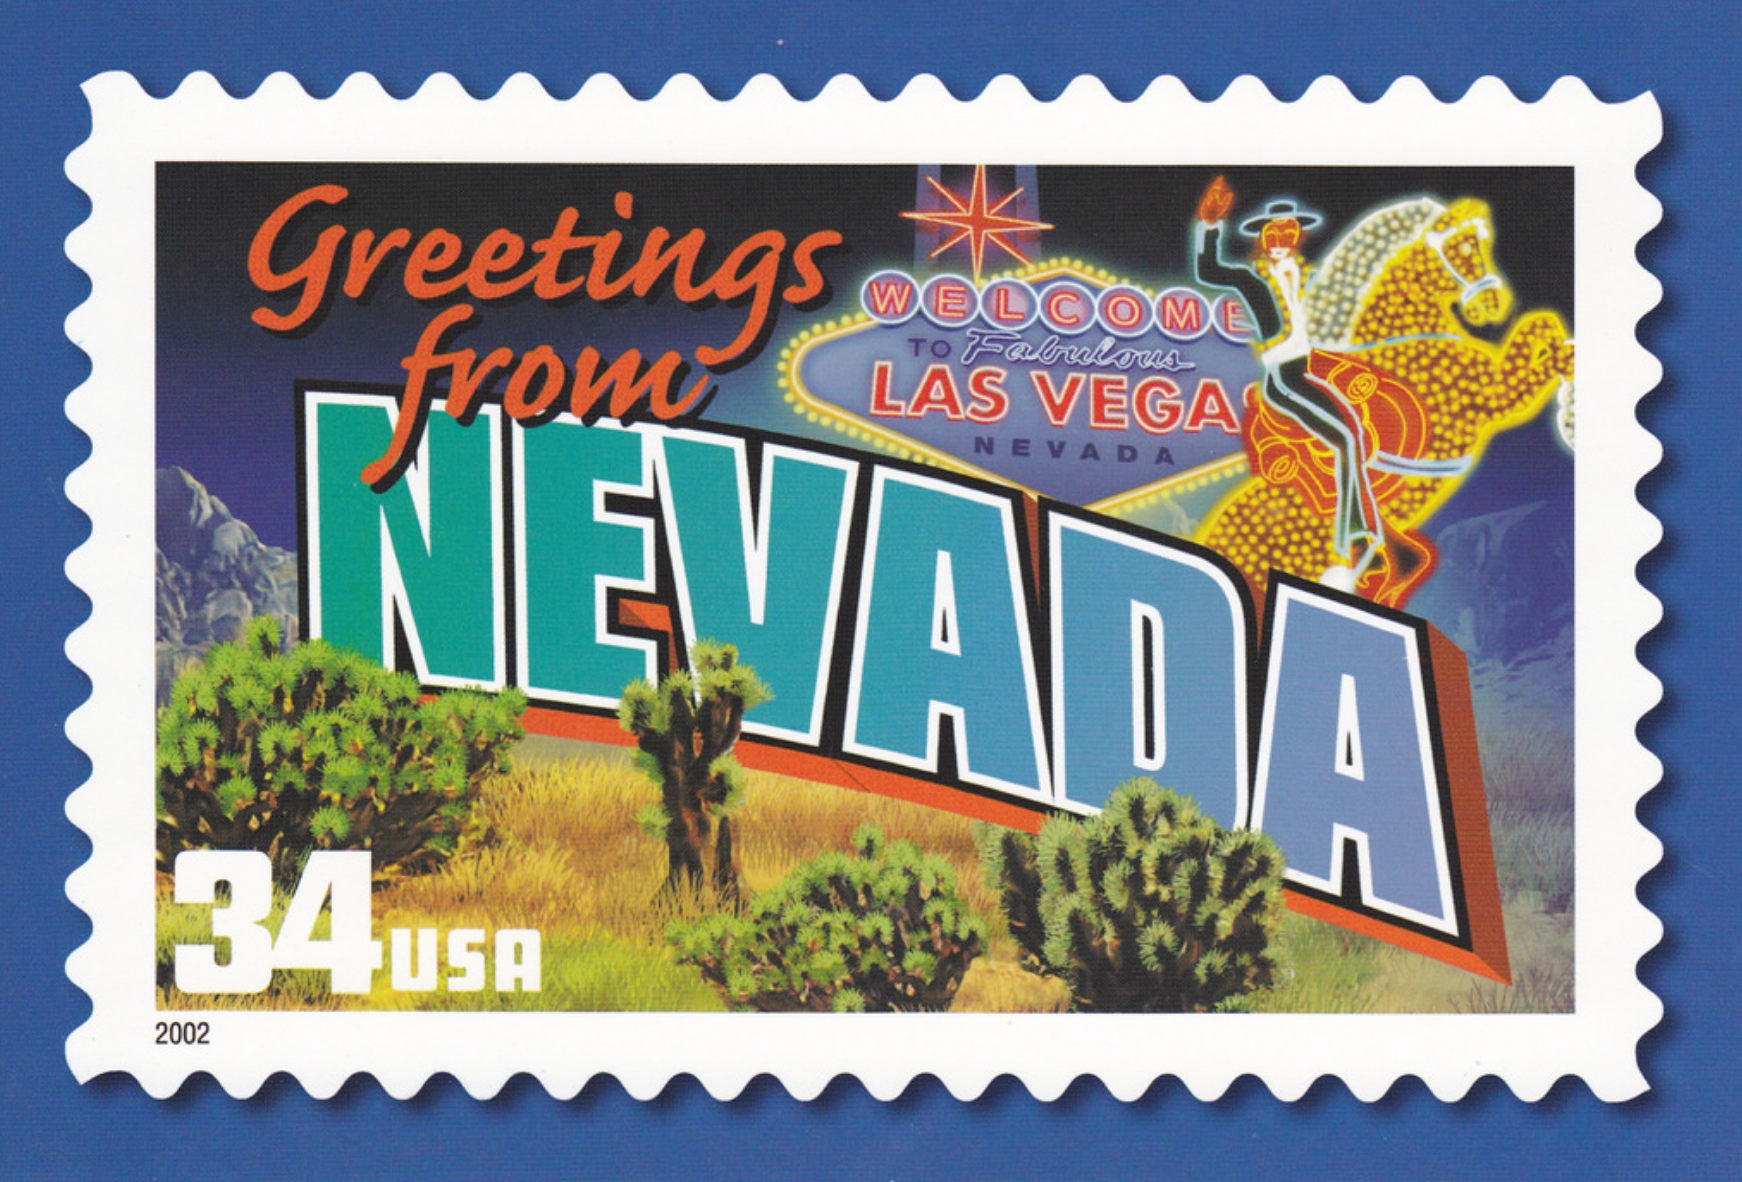 nevada, stay fit, corporate housing, furnished, serviced, apartment, fitness, wellness